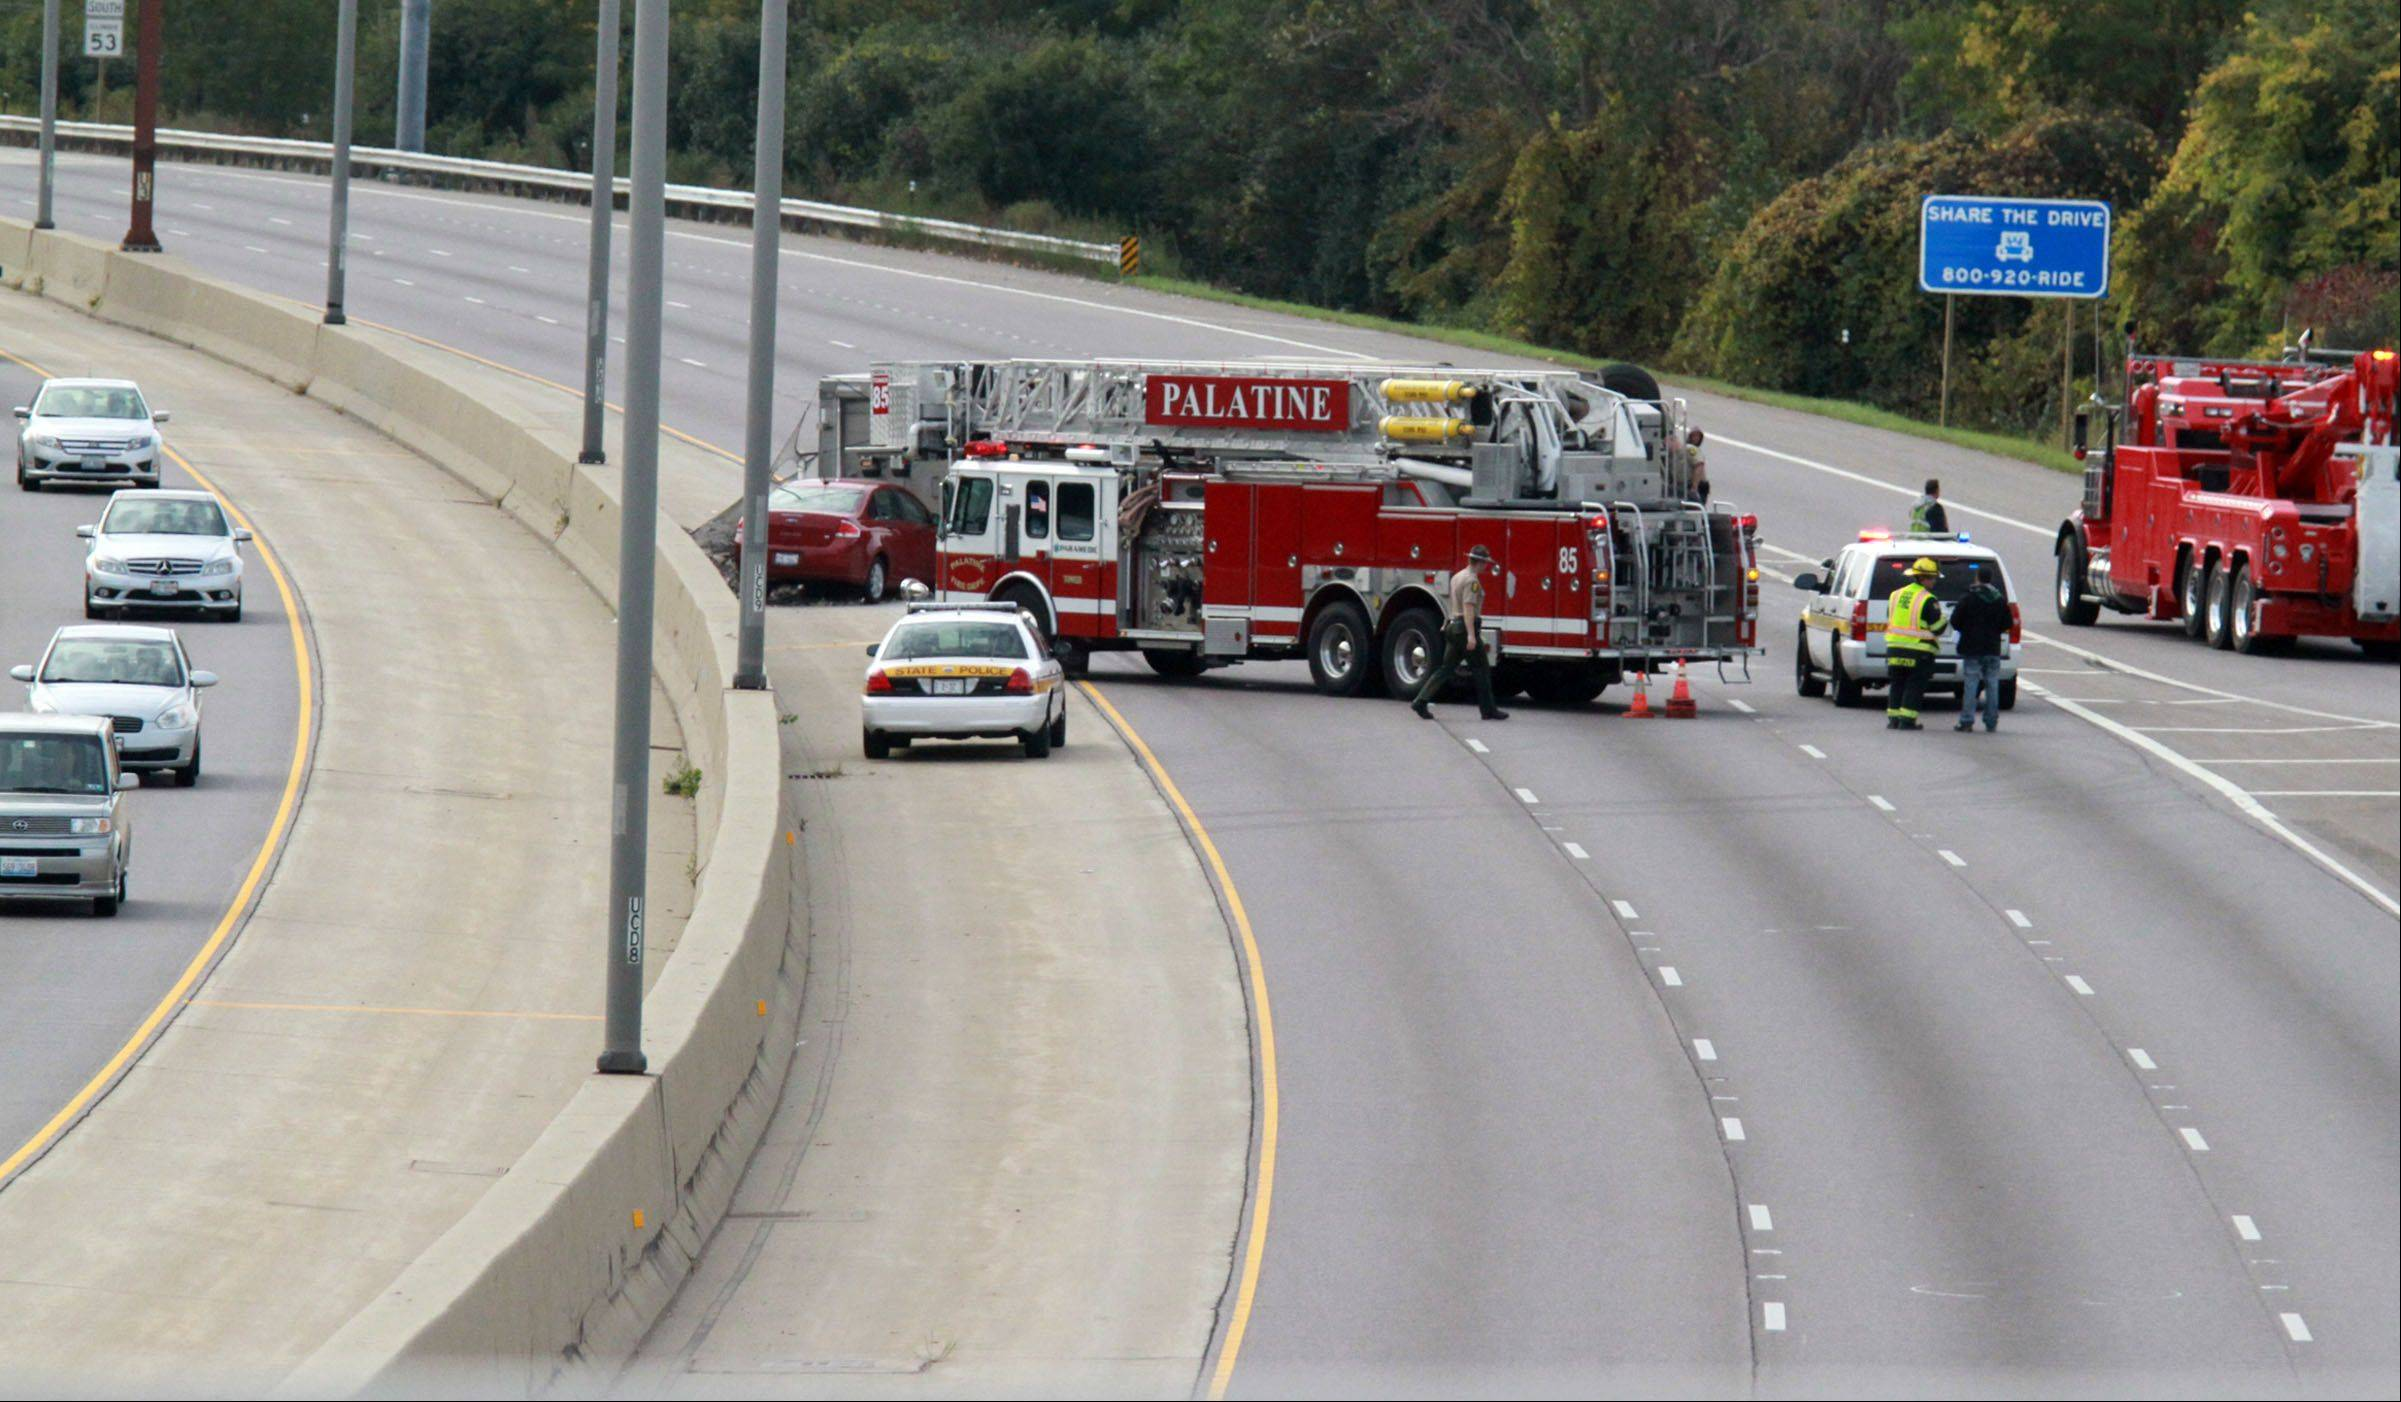 A rolled over semi truck, blocked from view by a Palatine firetruck, caused authorities to close all southbound lanes on Route 53 just south of Euclid Avenue Tuesday morning.